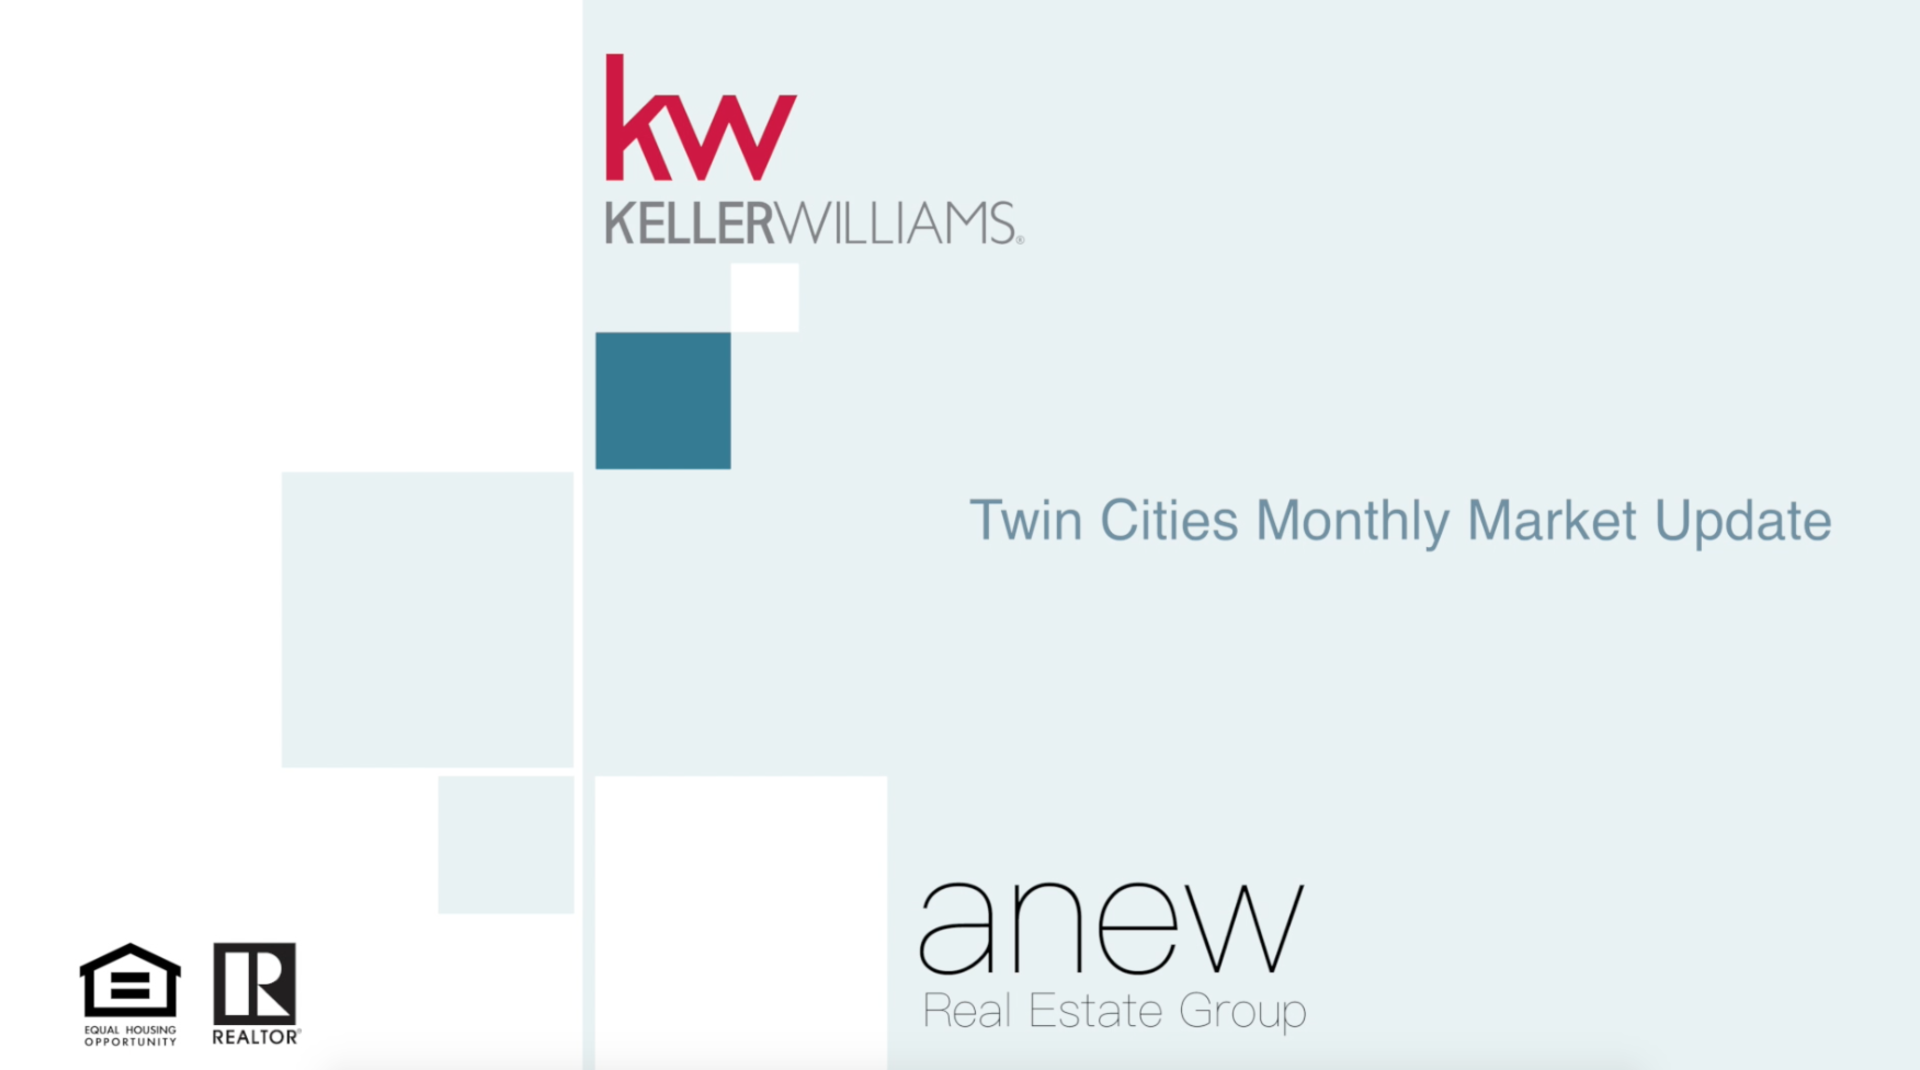 Twin Cities Monthly Market Update for September, 2018